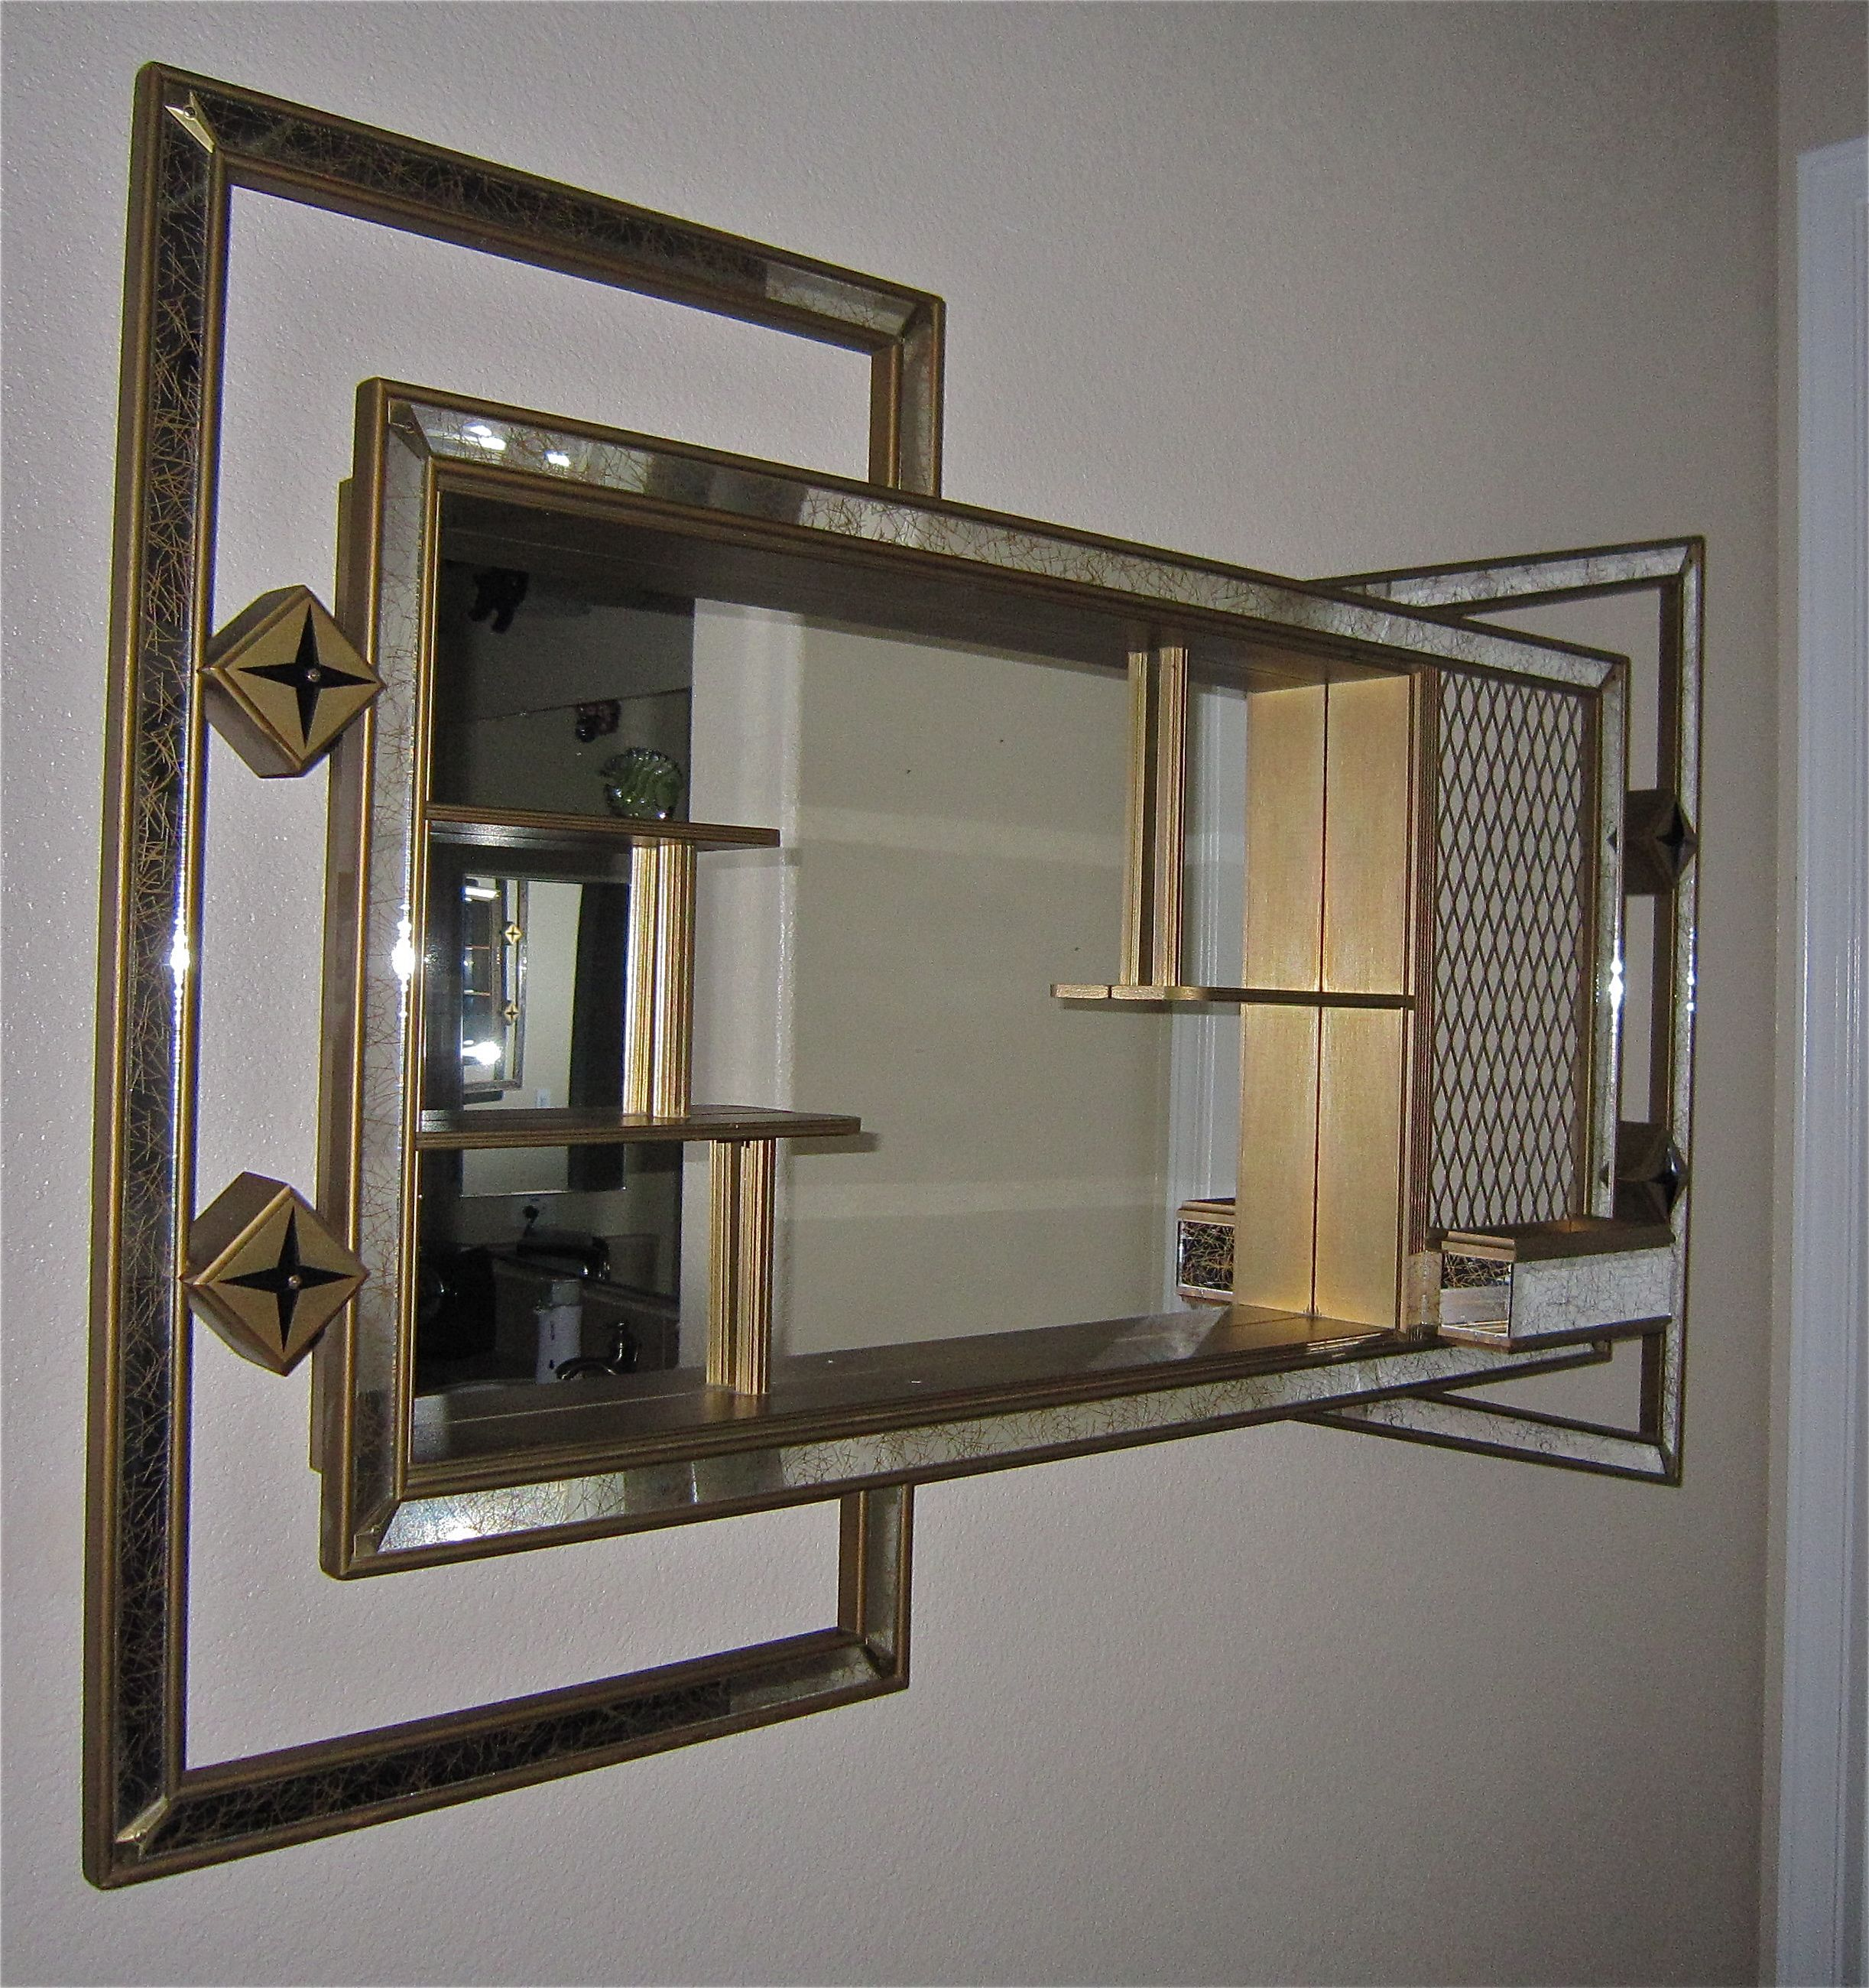 Bathroom Mirrors Ebay Australia vtg 50s mid century modern eames retro atomic mirror shadow box